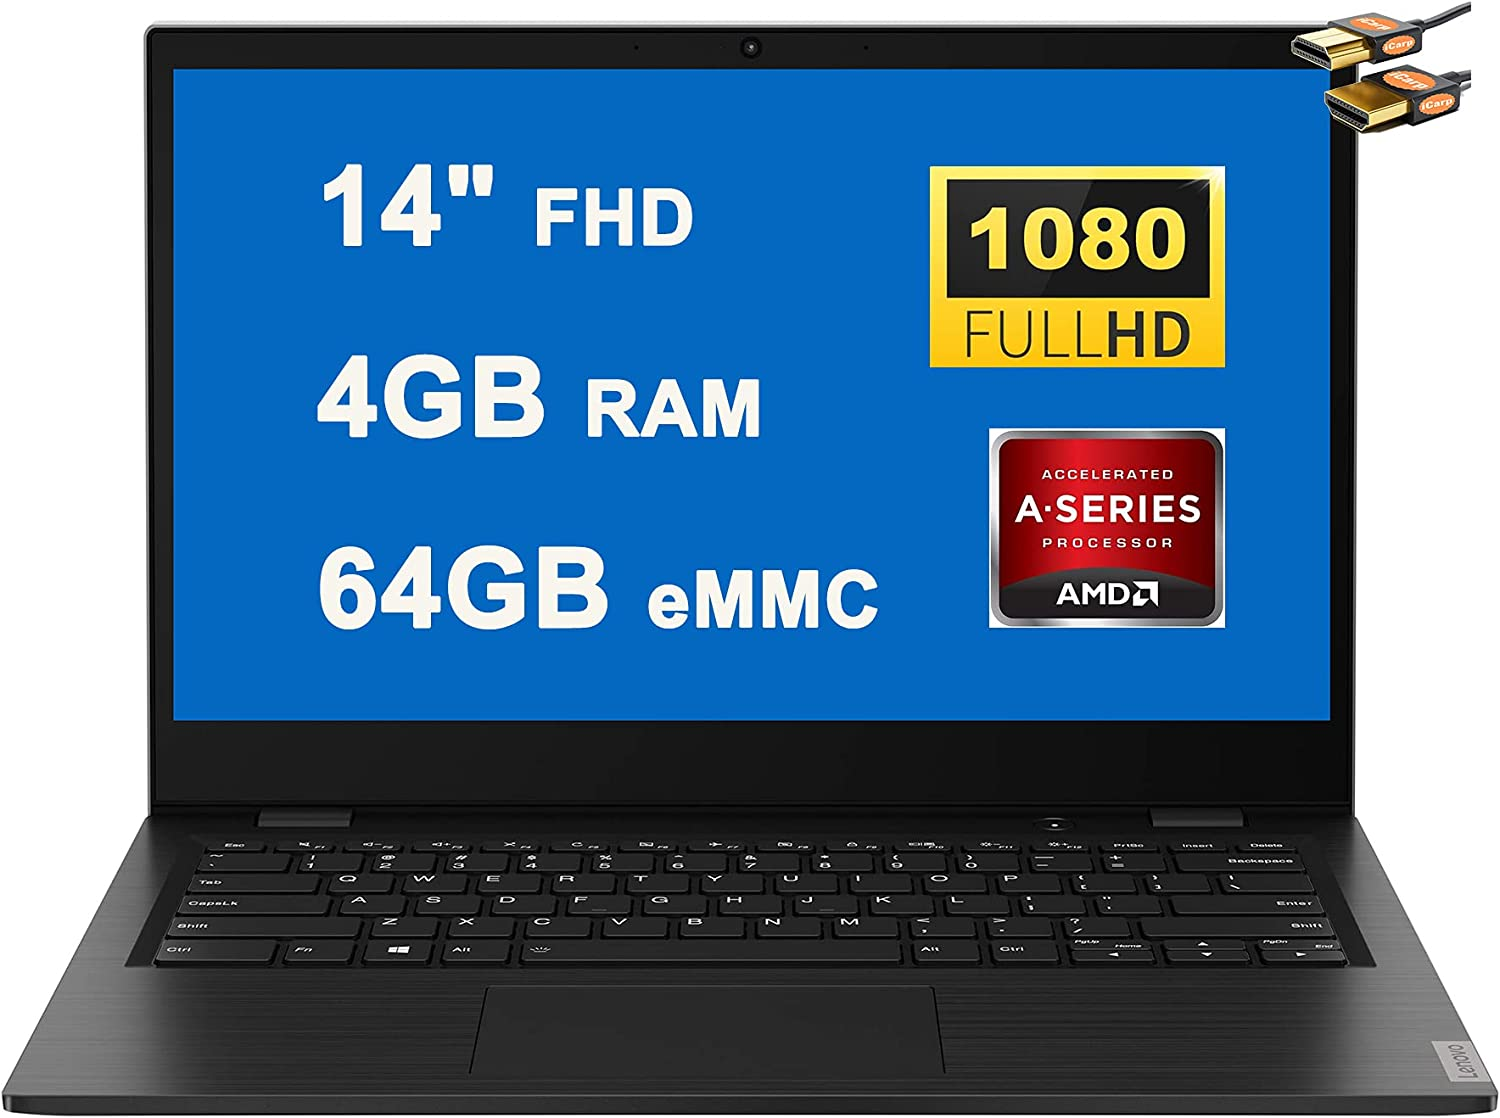 Lenovo Ideapad 14W Business 14 Laptop Computer Display Cheap super special price Special price for a limited time FHD 14